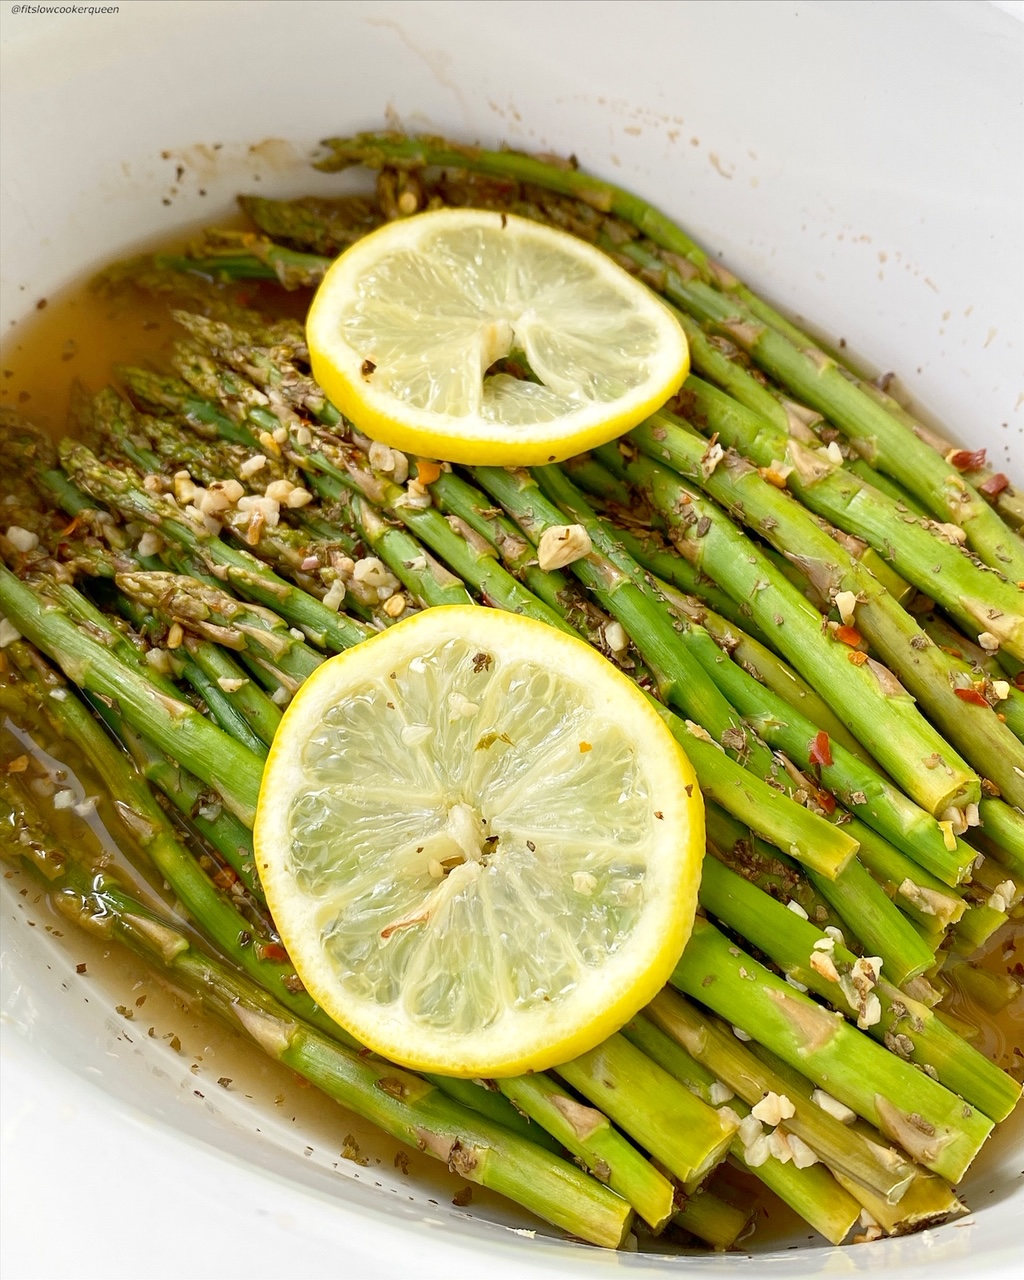 another close up of cooked asparagus in a bowl topped with seasonings and garlic